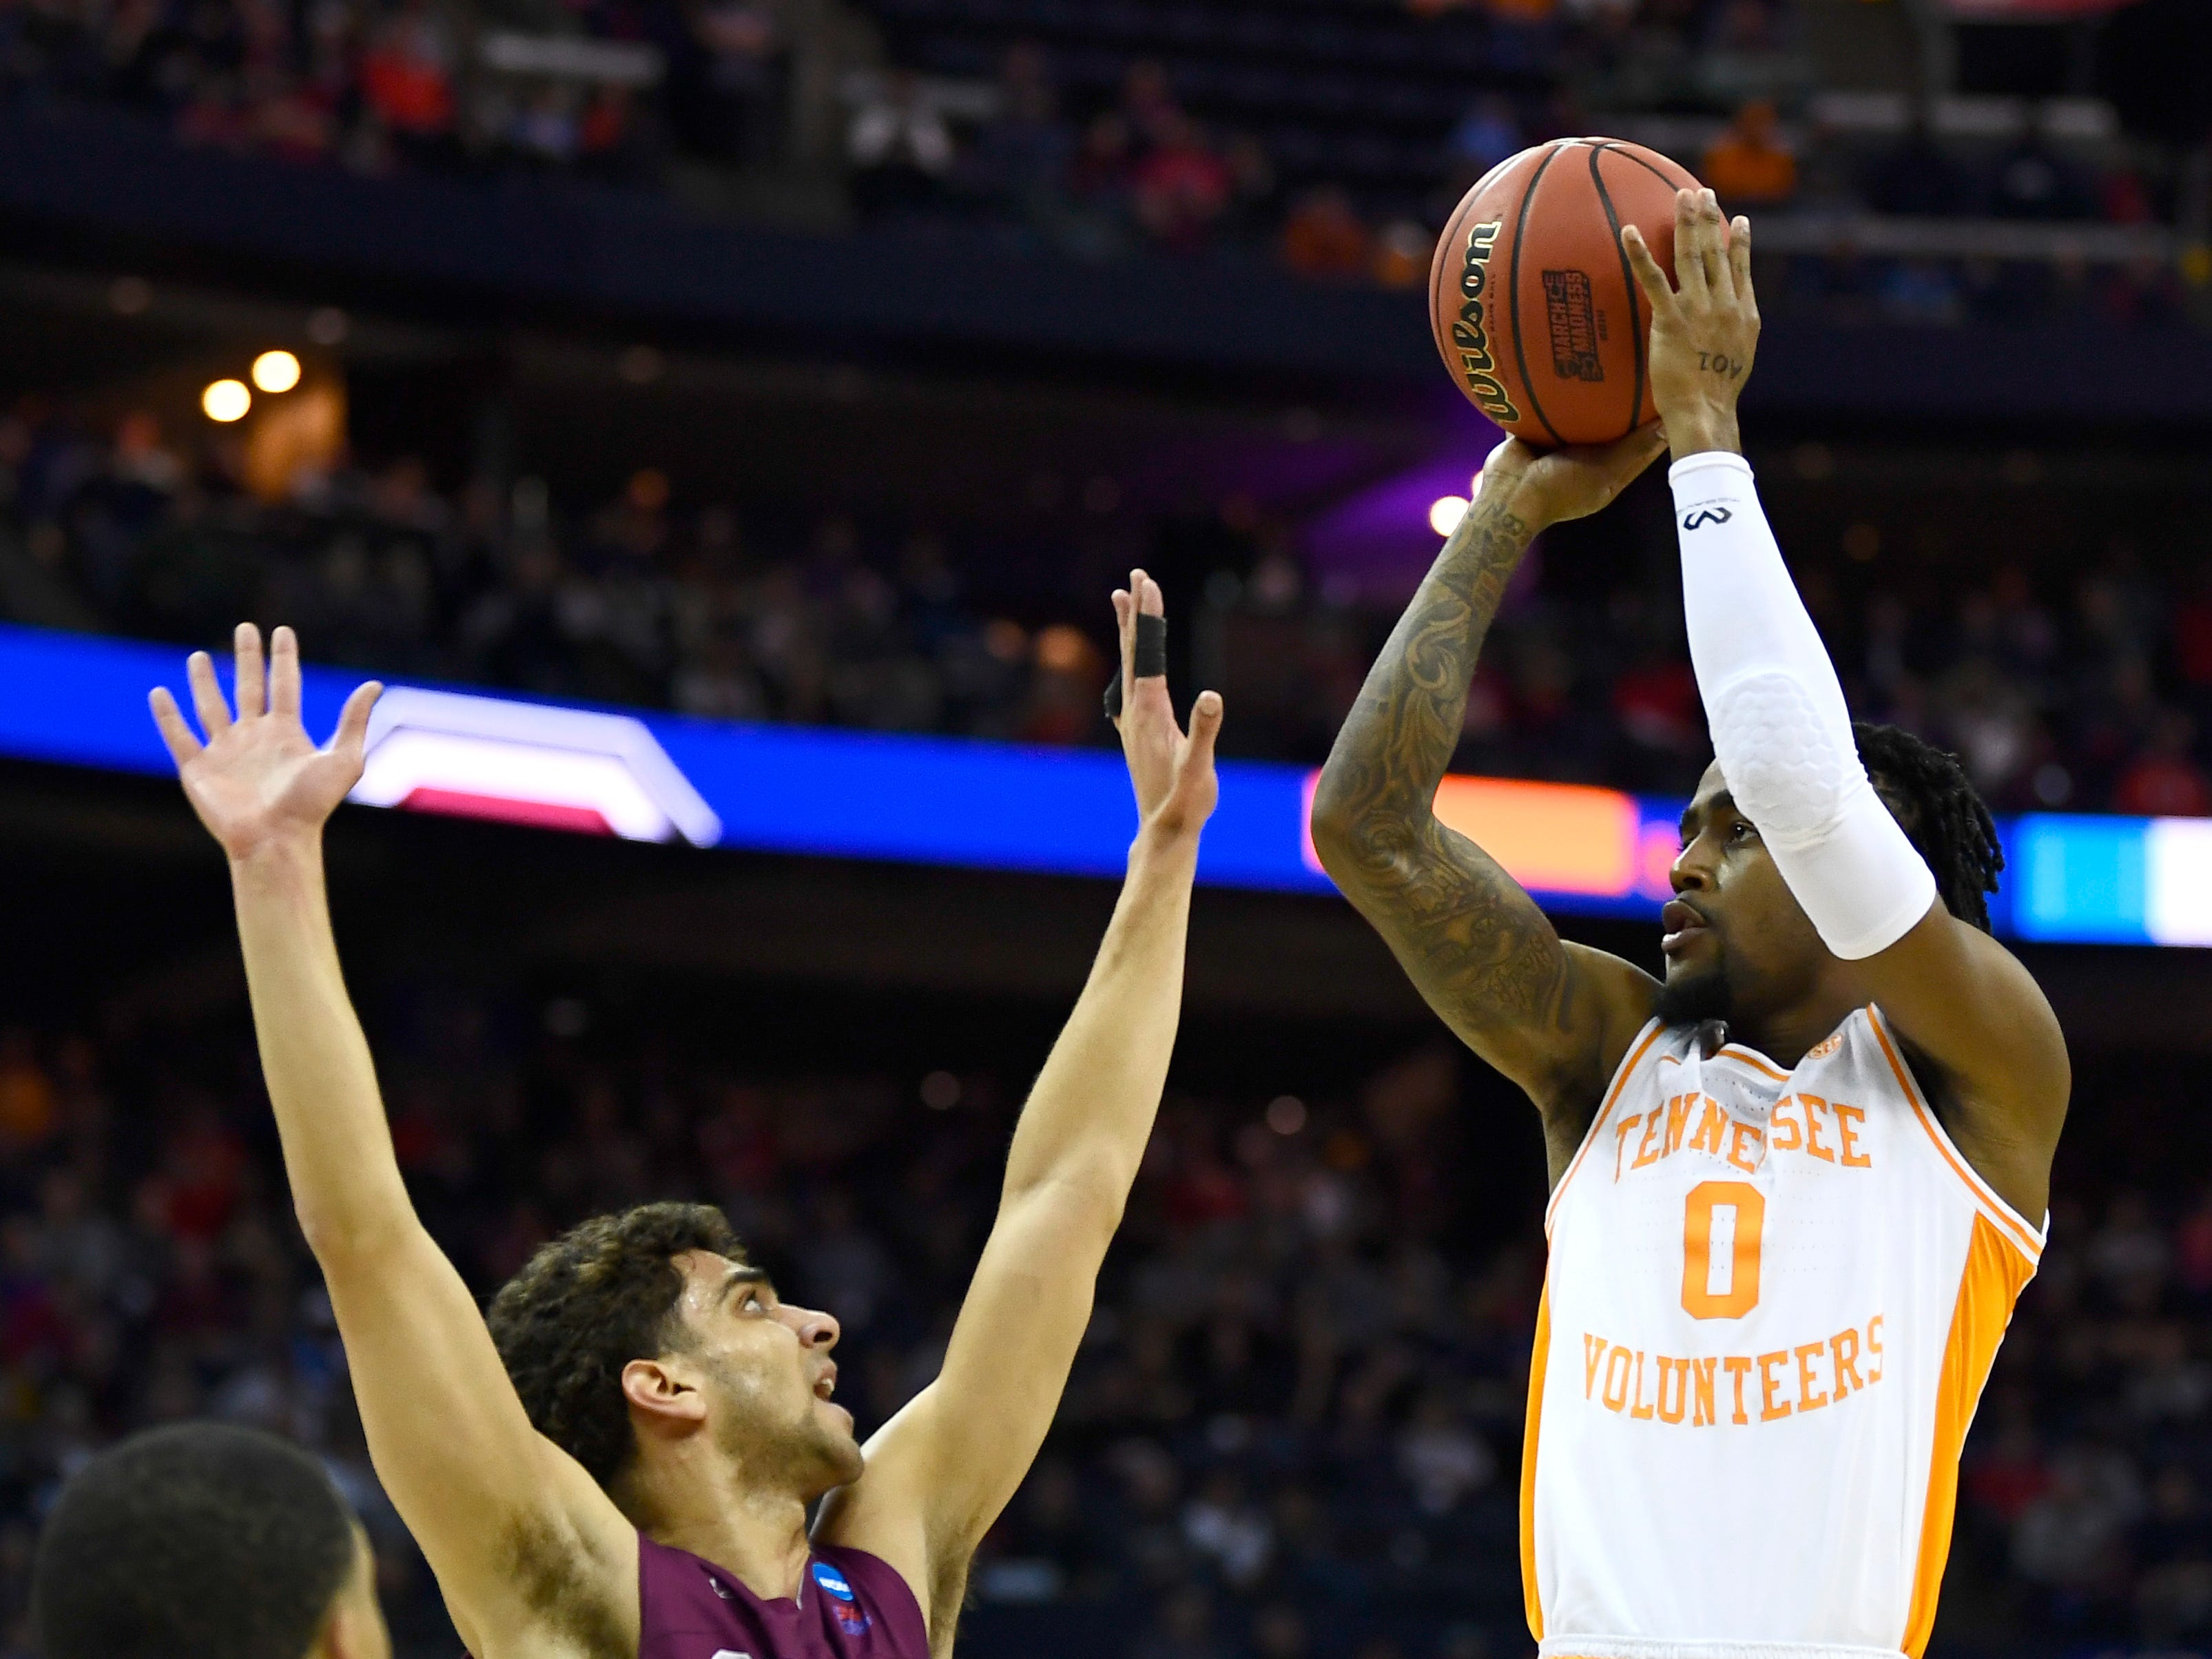 Tennessee guard Jordan Bone (0) shoots over Colgate guard Francisco Amiel (30) during their first round game of the NCAA Tournament at Nationwide Arena in Columbus, Ohio, on Friday, March 22, 2019.